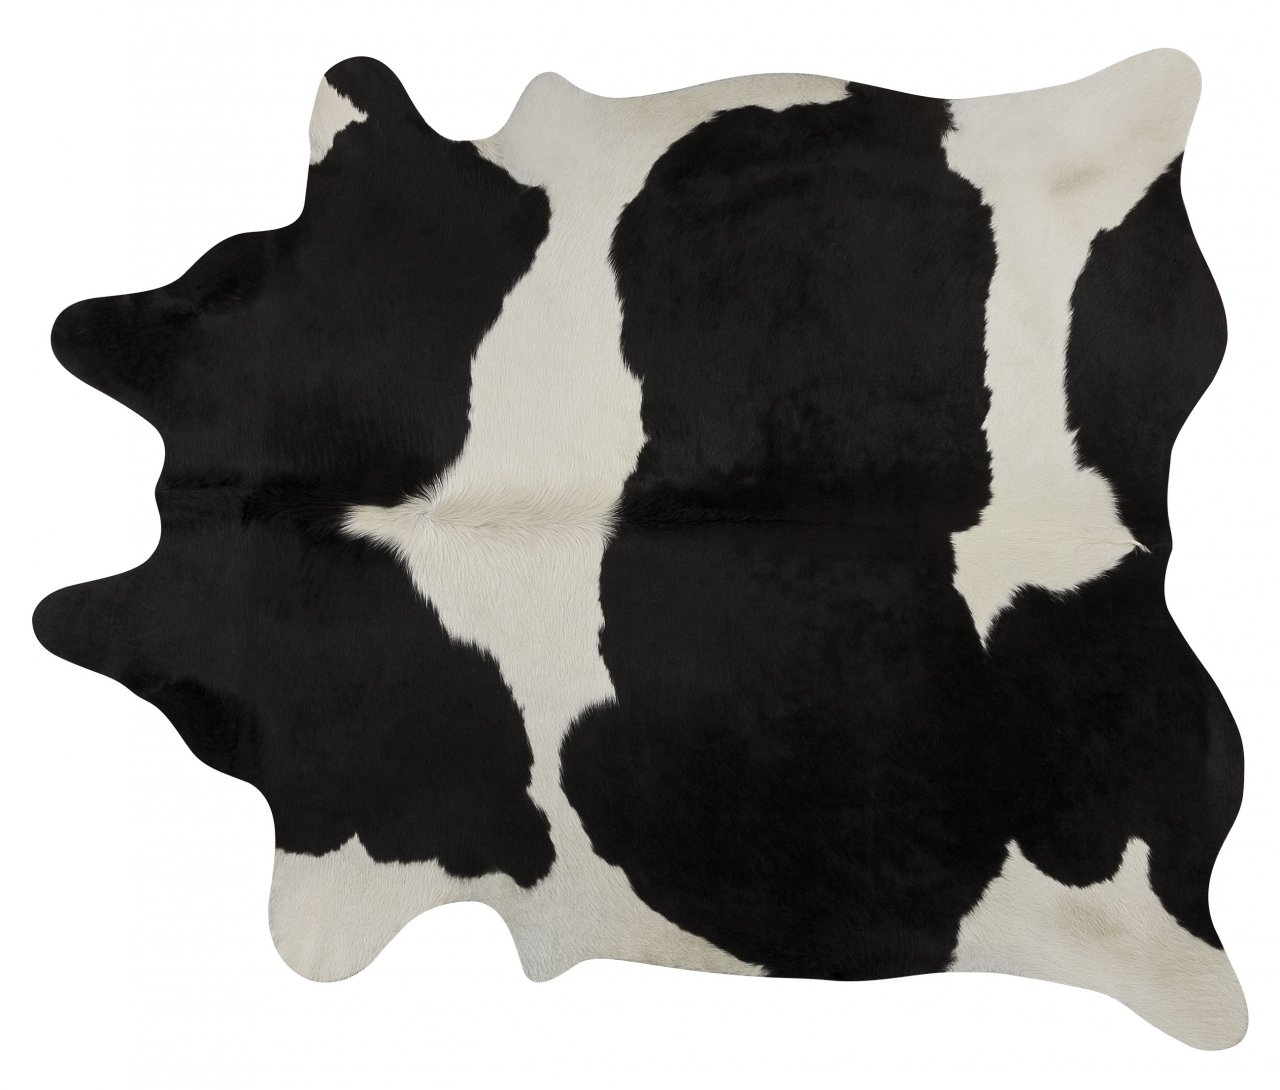 Black and White Brazlian Area Rug - Size Large